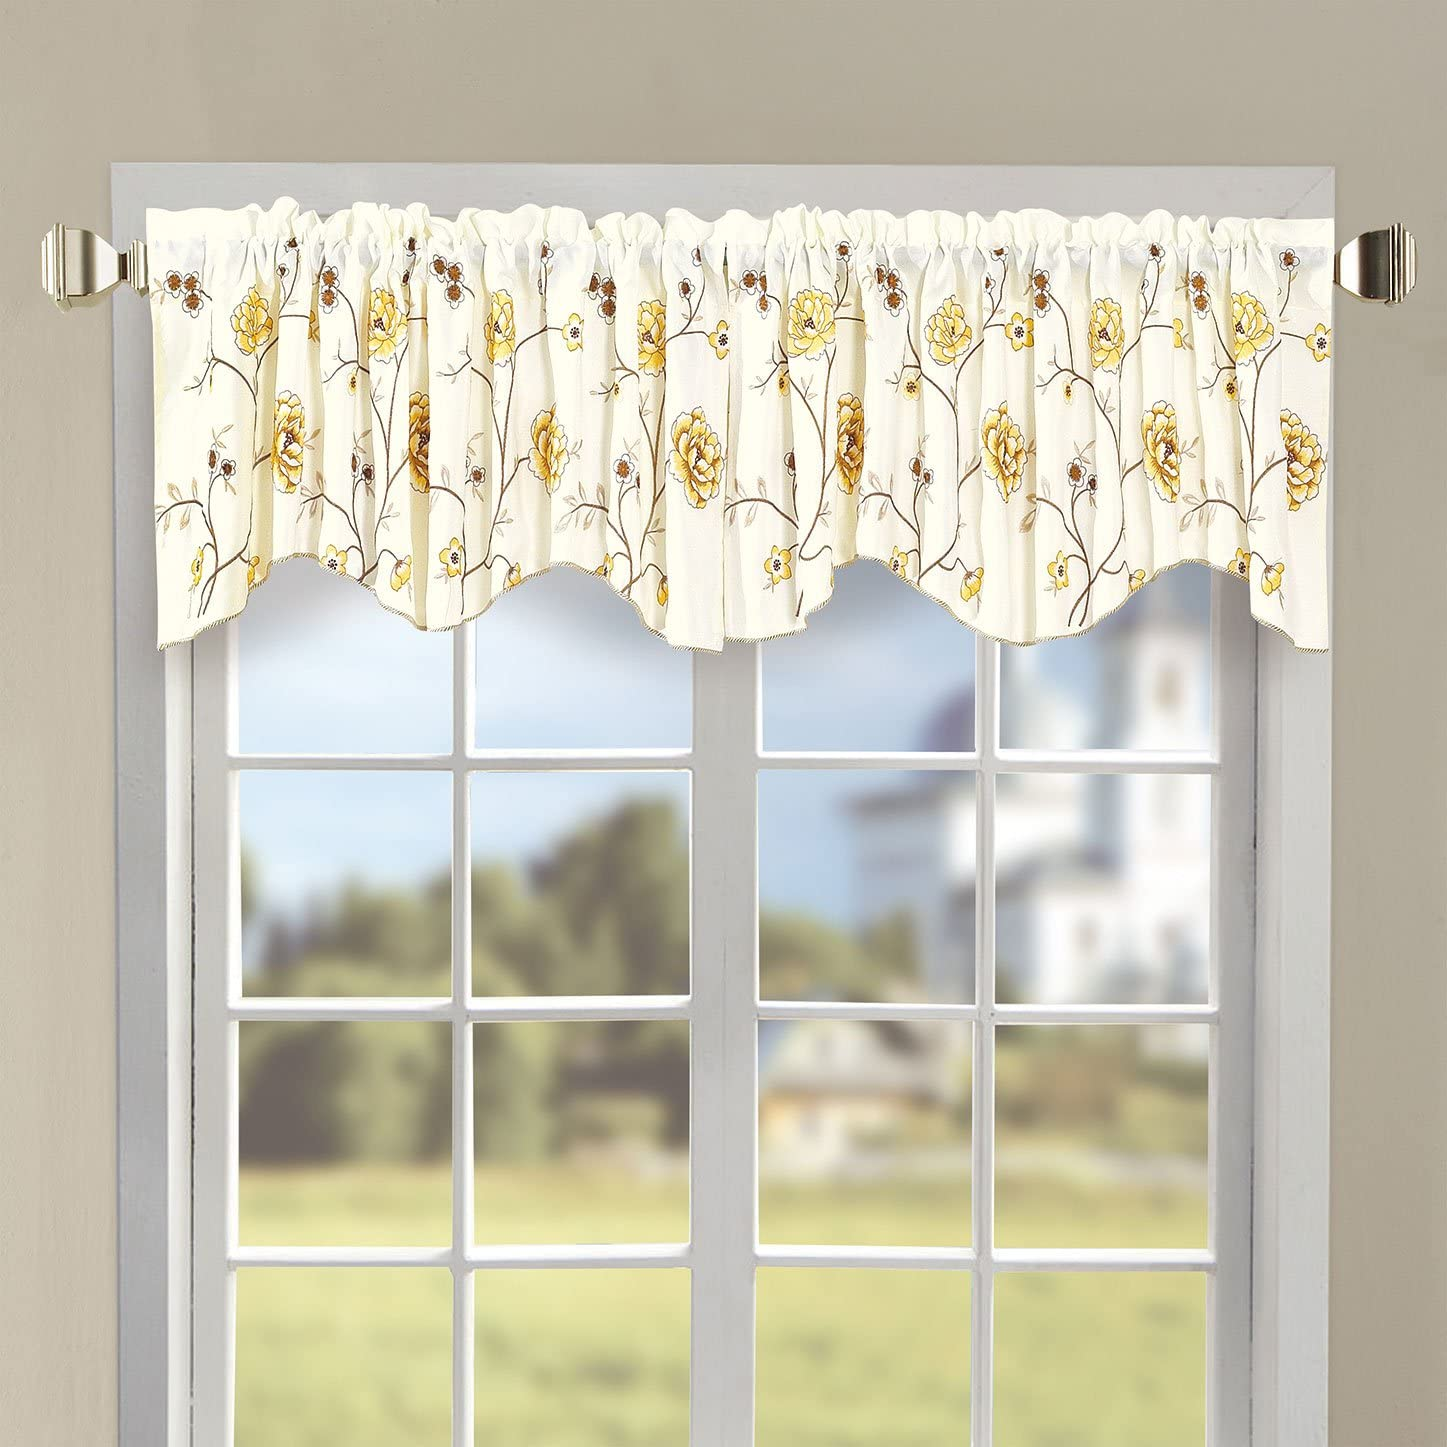 Home Soft Things Serenta Classic Embroidery Valance, 60 x 19 , Gold Spring Flowers